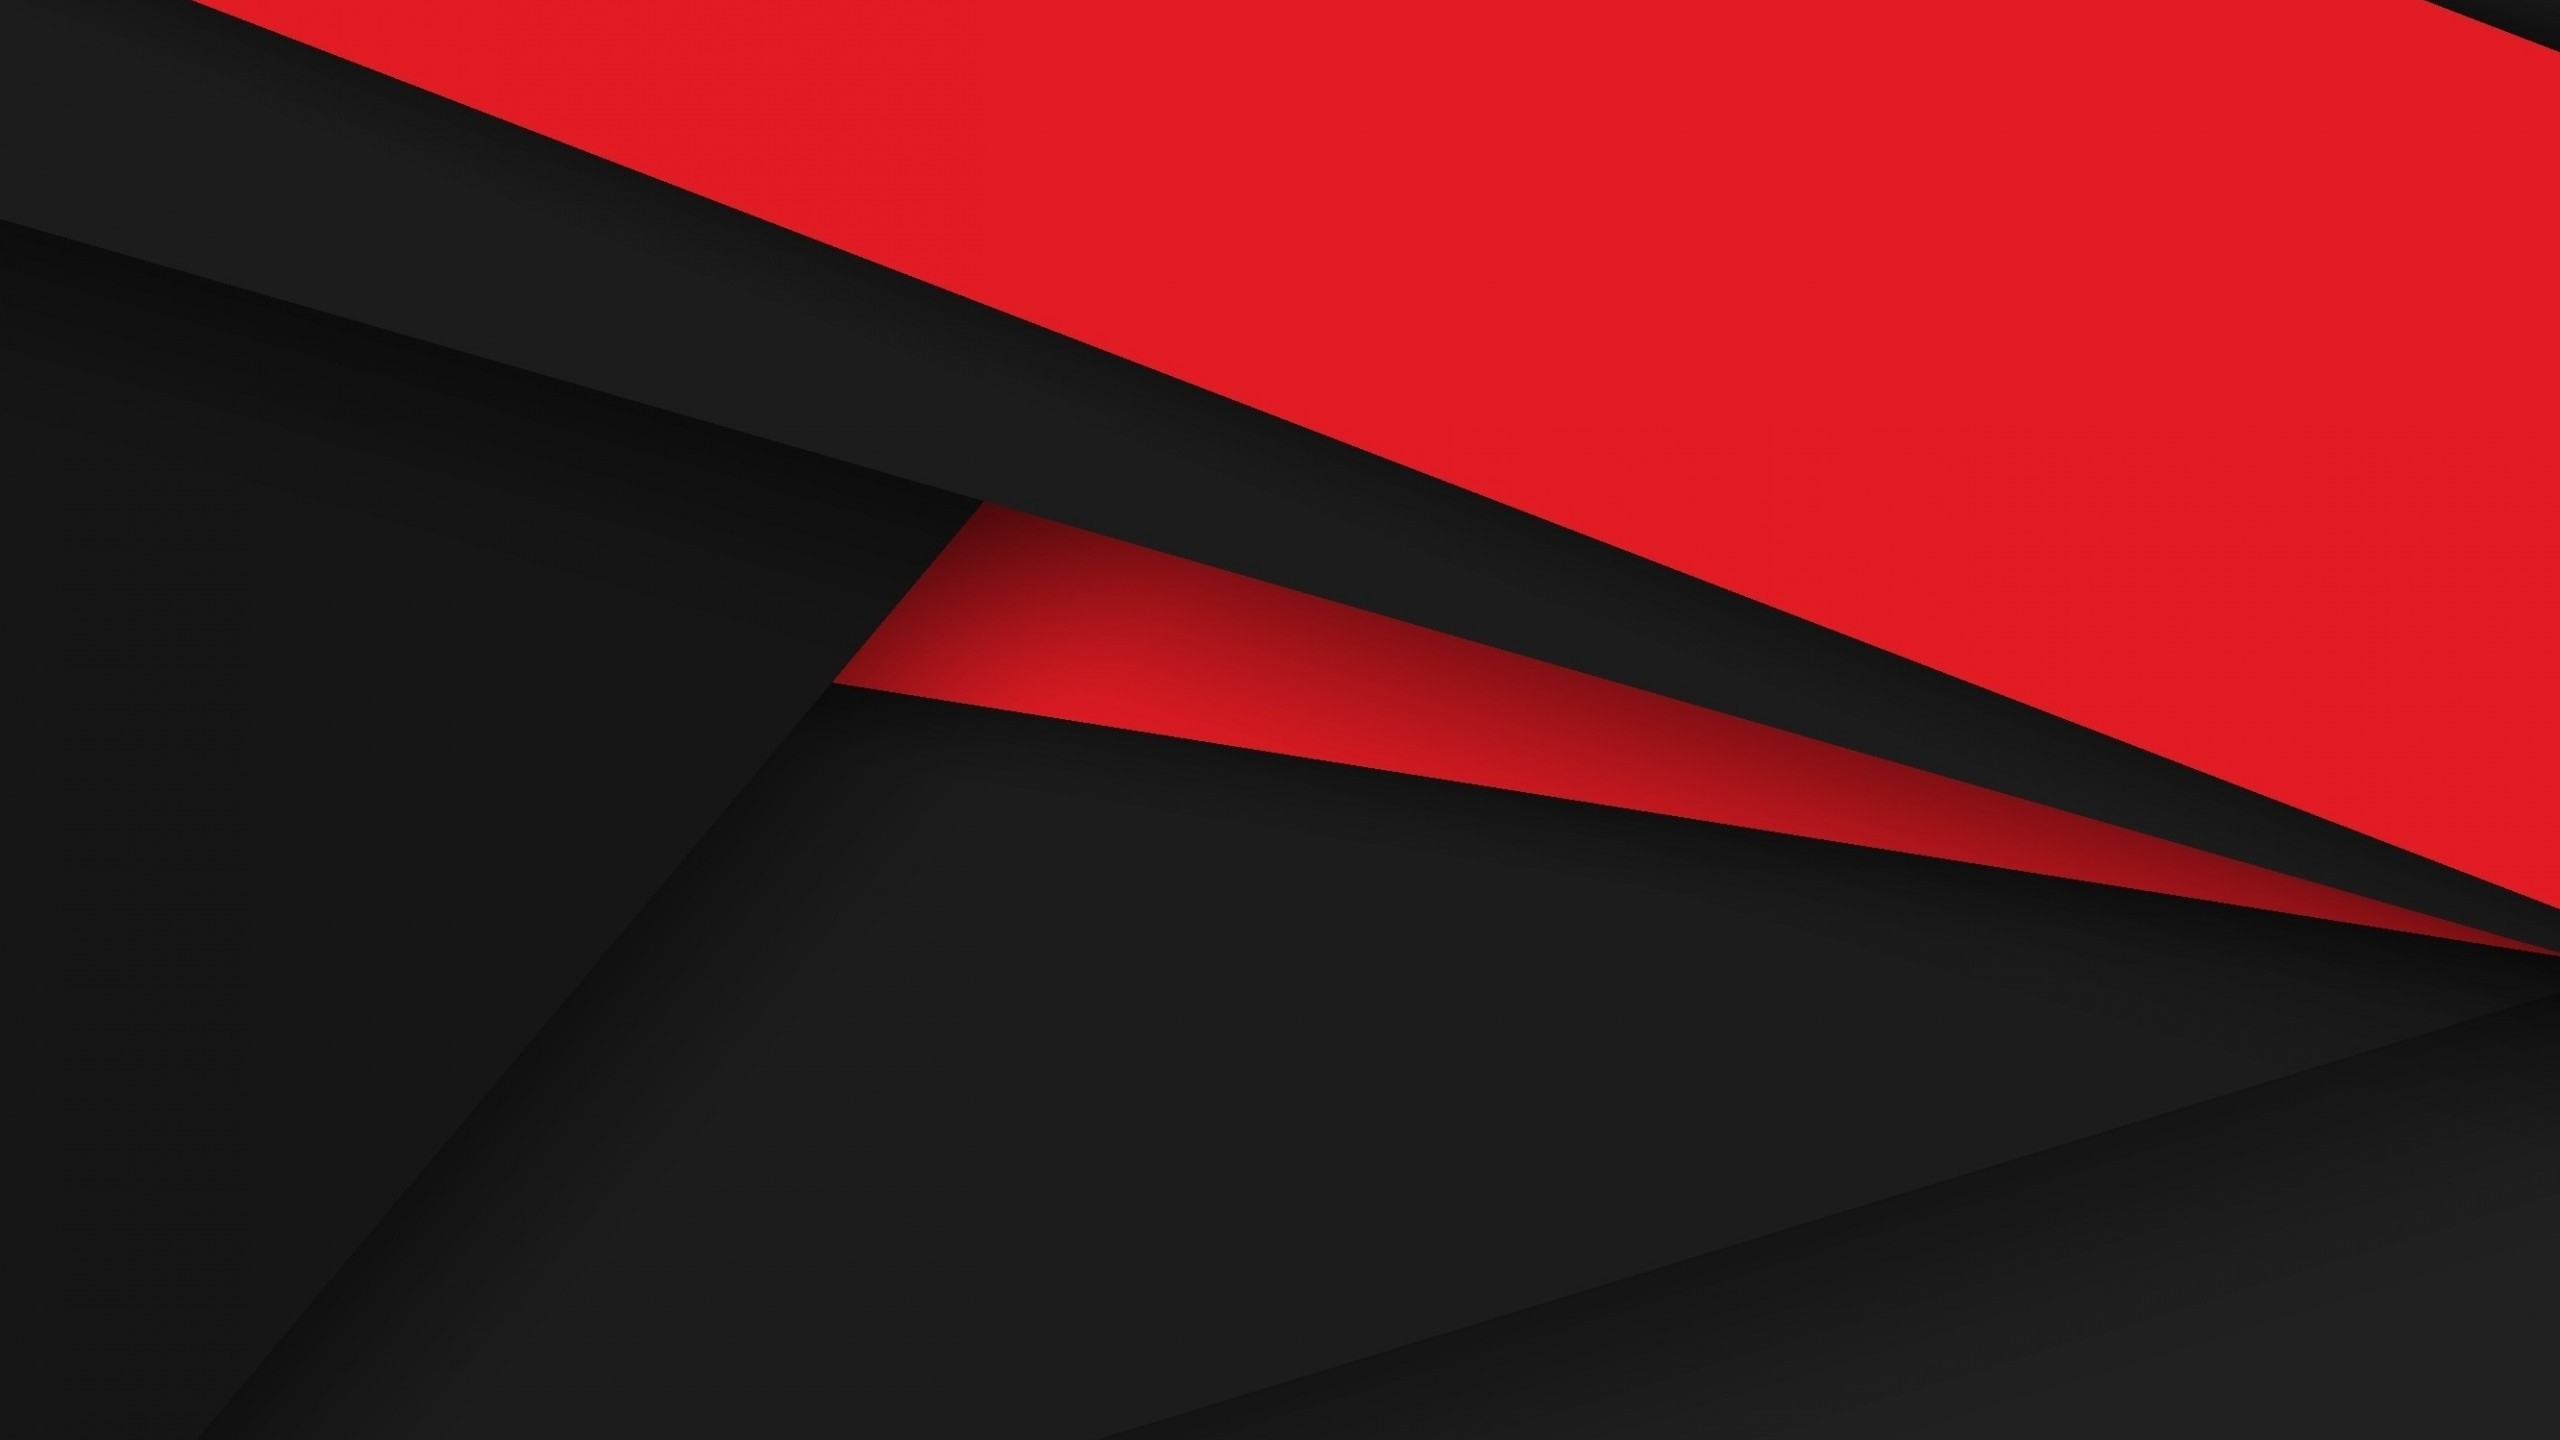 black and red wallpaper 3 | aslania